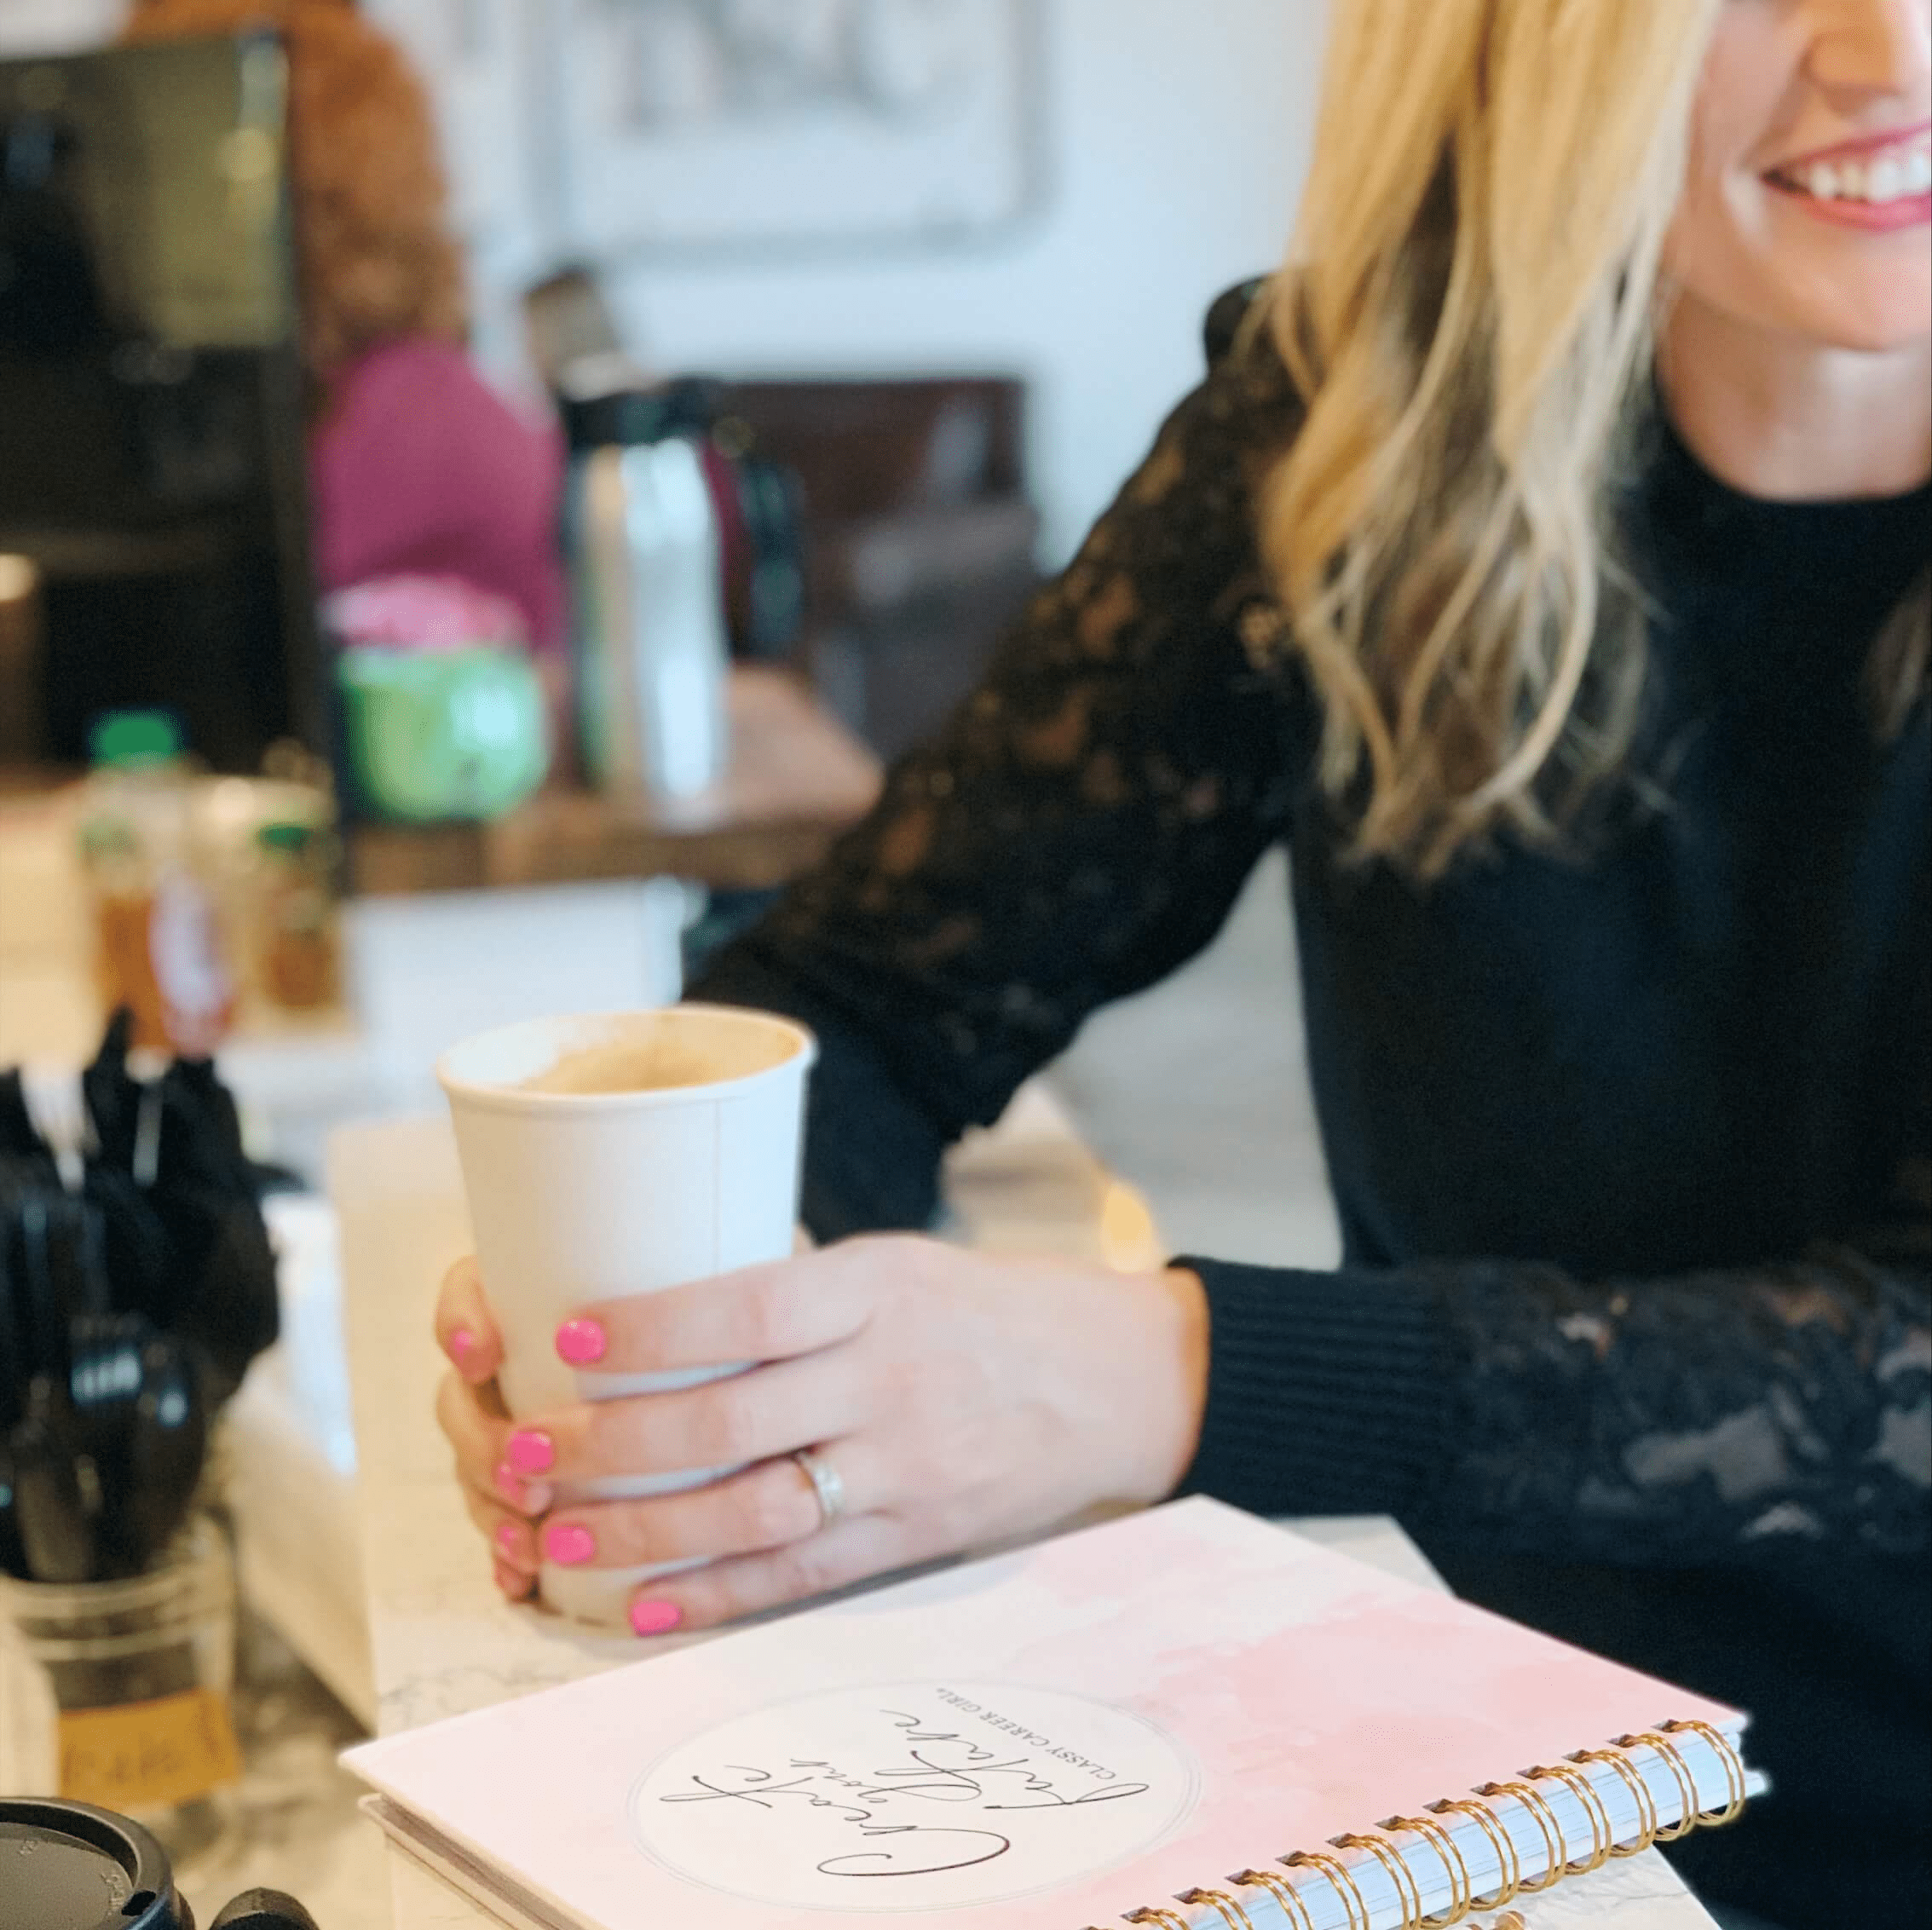 Planner Ideas: 3 Plans You Need For More Focus